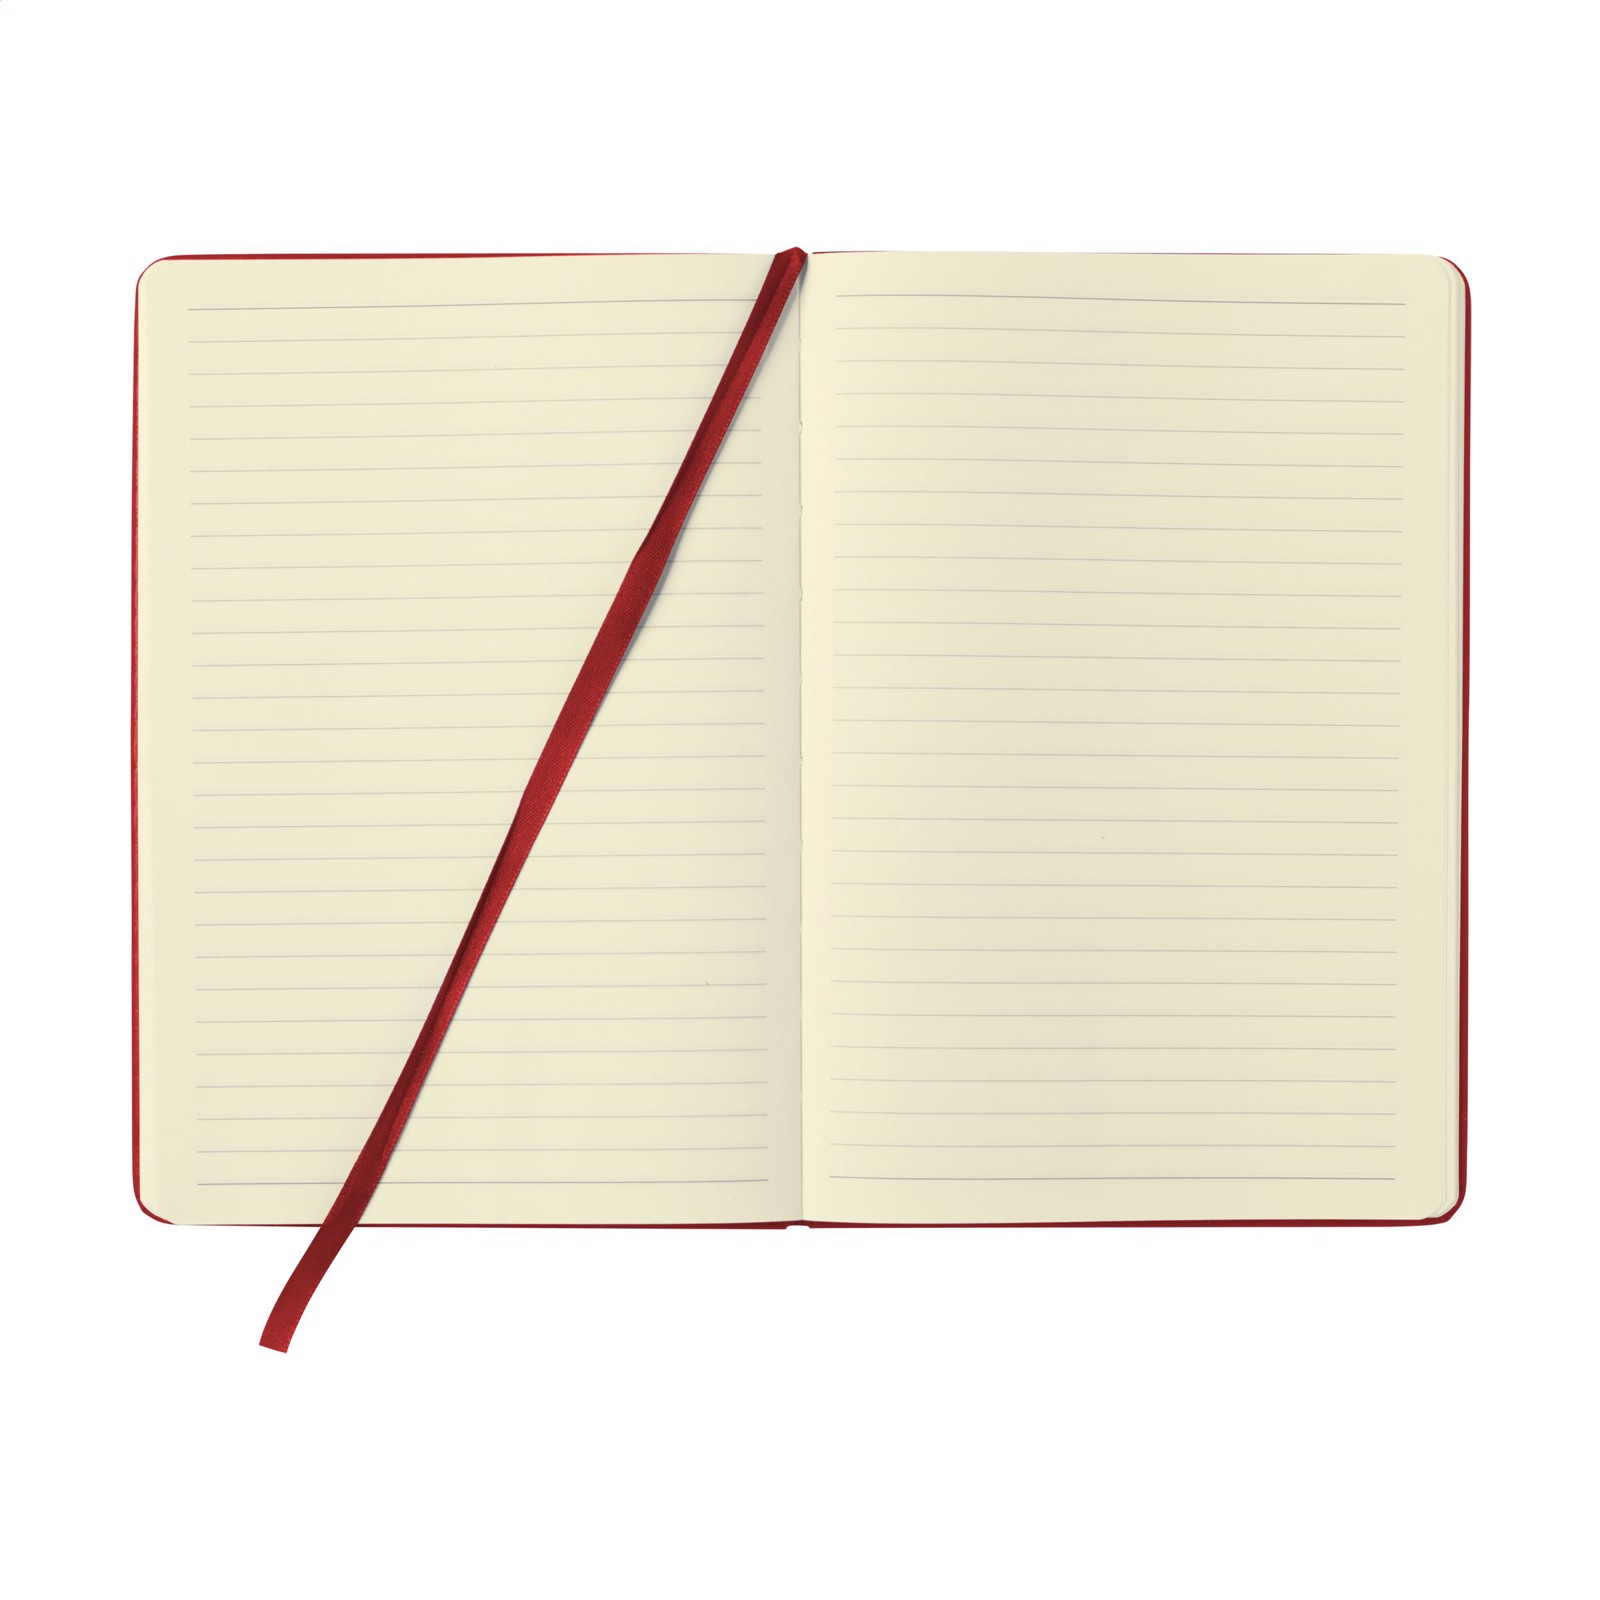 BudgetNote A5 Lines - Red